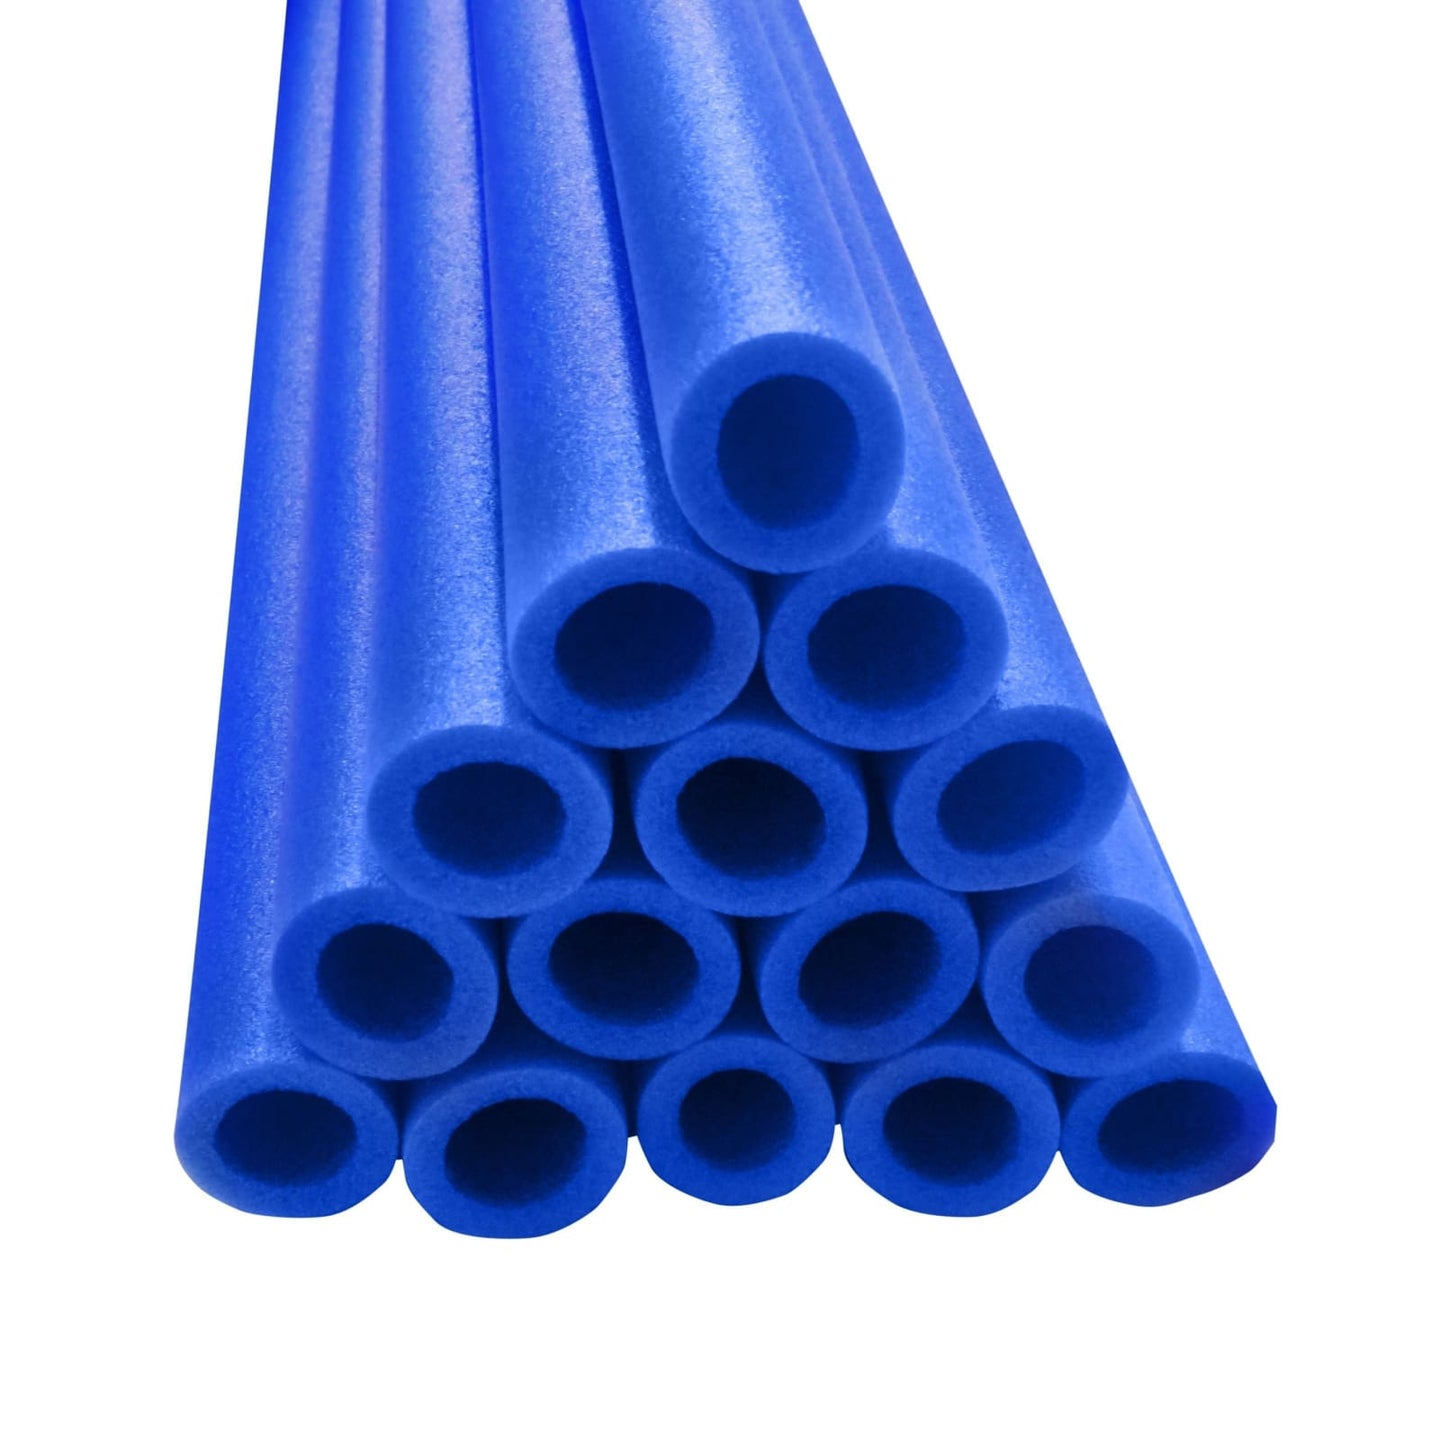 Upper Bounce 37 Inch Trampoline Pole Foam Sleeves Fits For 1 Diameter Pole - Set Of 16 -Blue - Trampoline Replacements